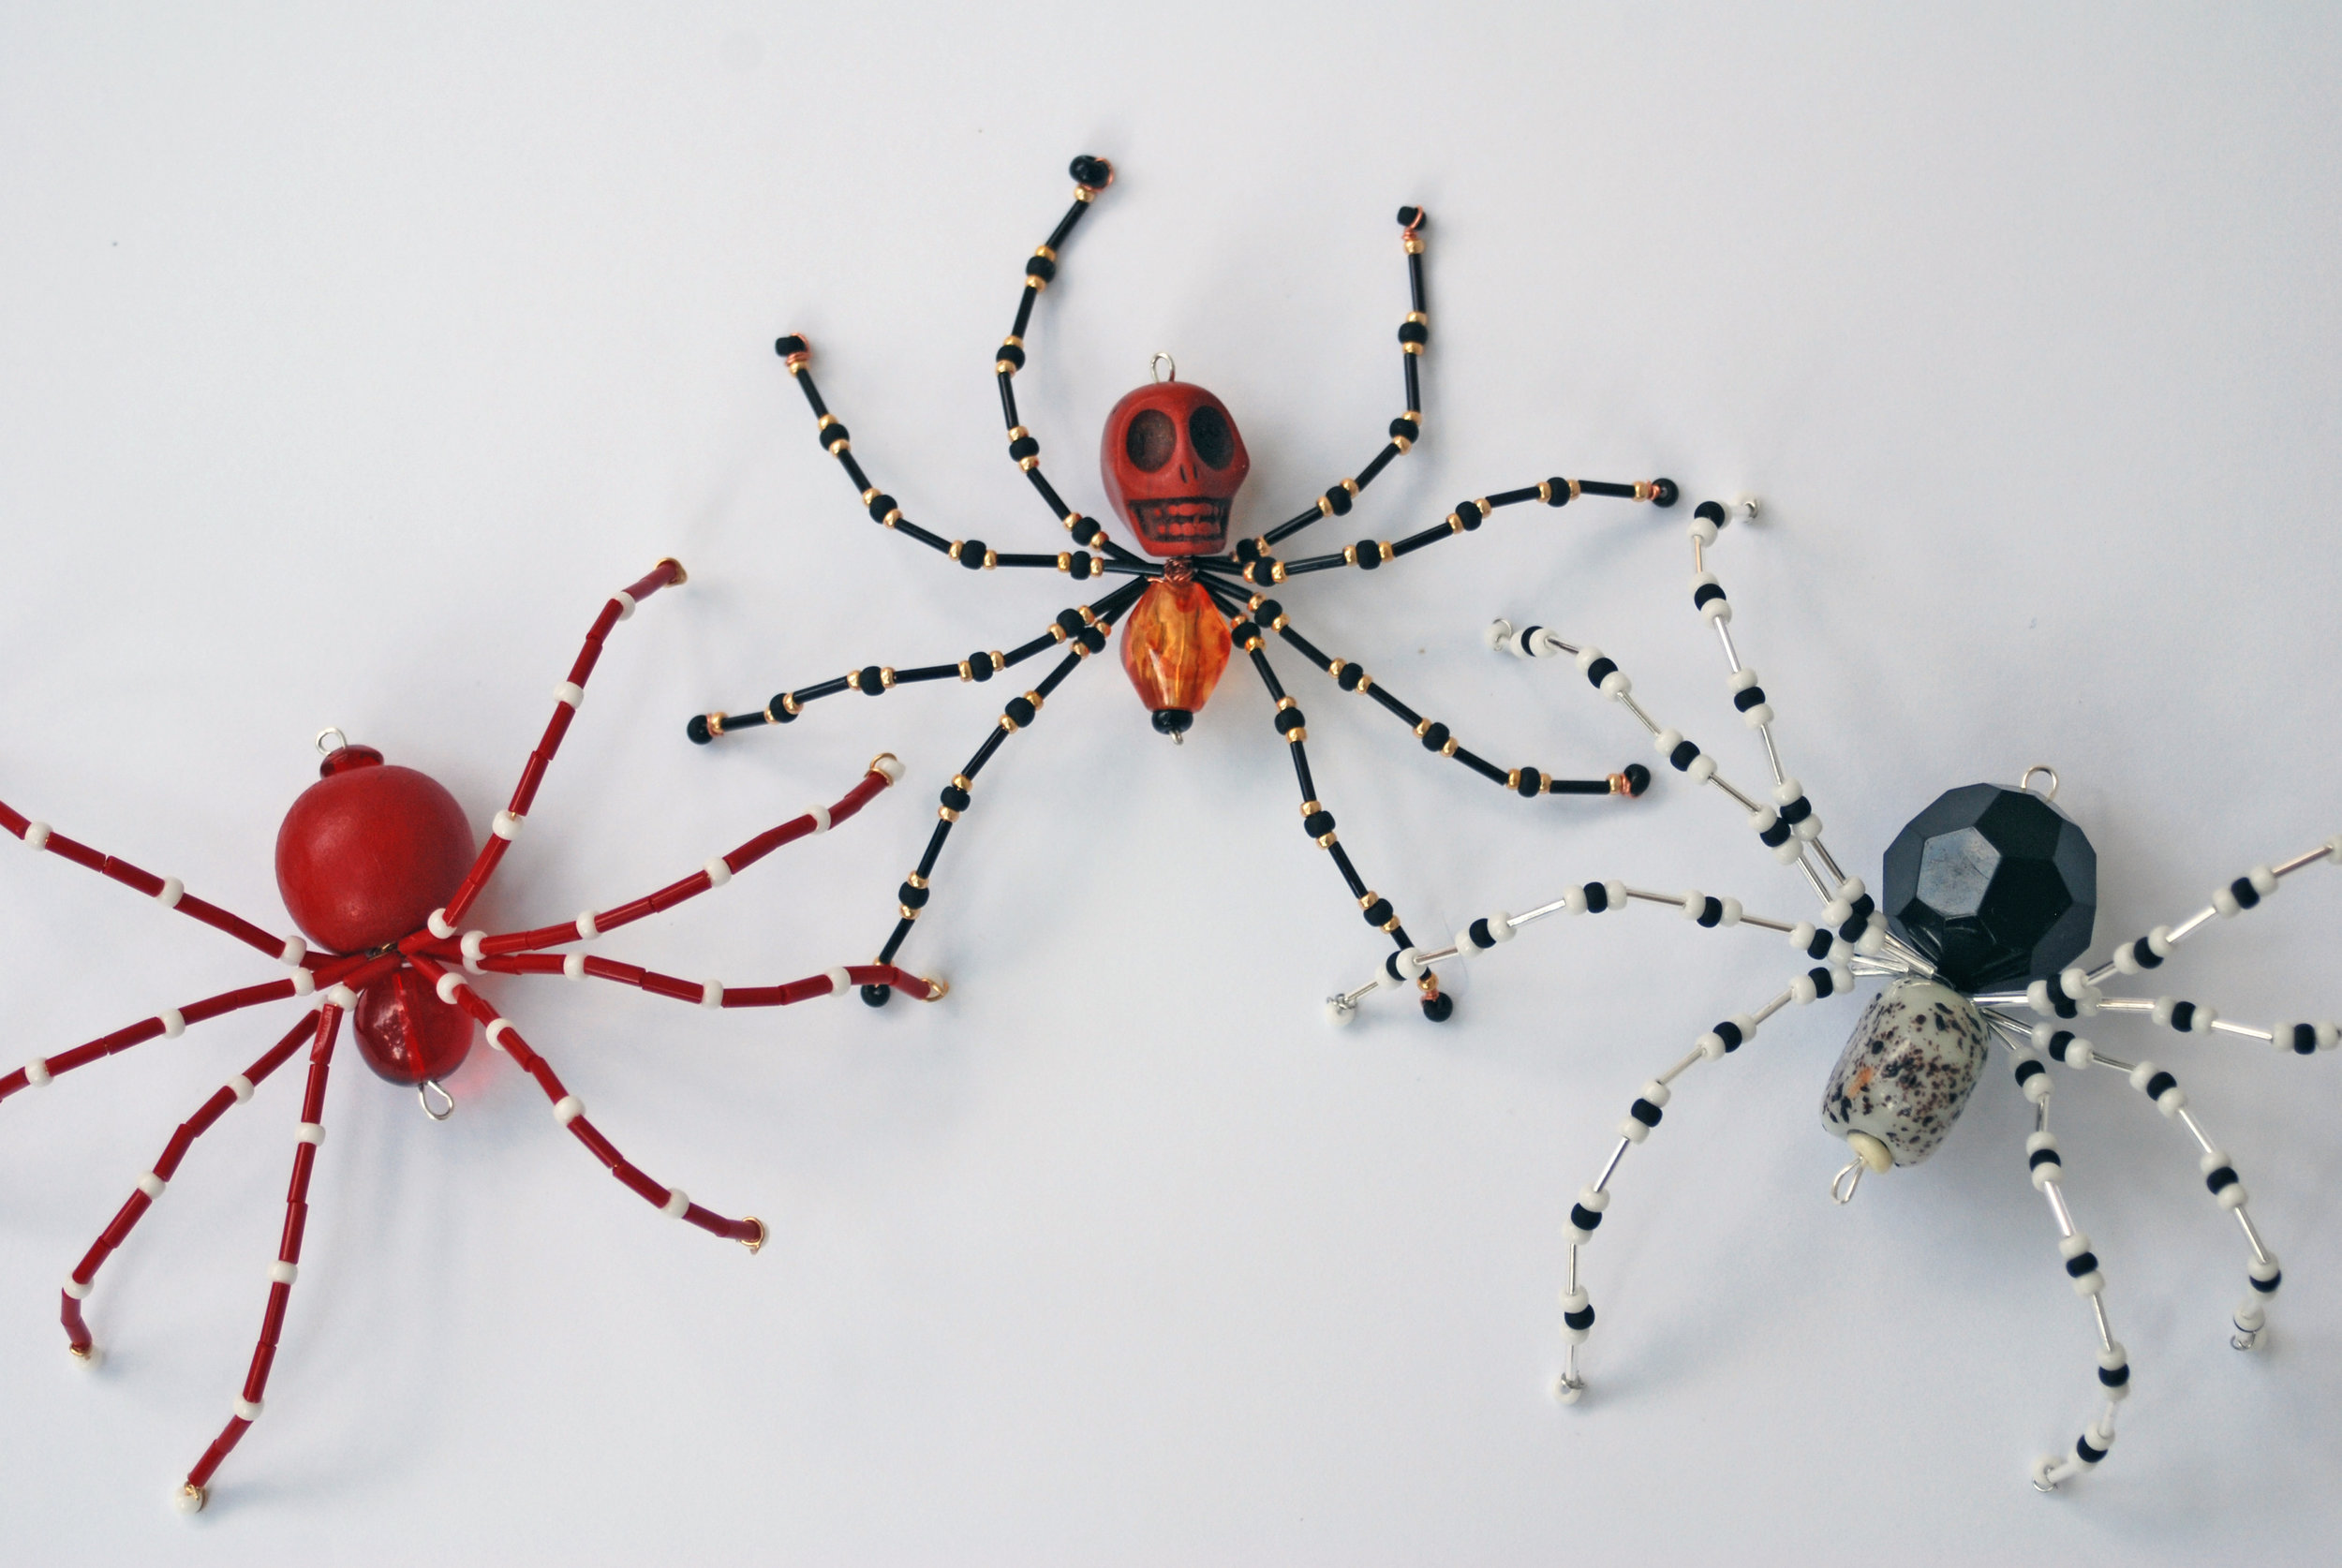 Design your own colorful, quirky beaded spider at this laid-back class that'll serve spooky snacks and get you into the Halloween spirit. This classes is part of Bead 'n Bitch, a new series of crafty classes in Little Rock, Arkansas, curated by jewelry maker Bang-Up Betty.